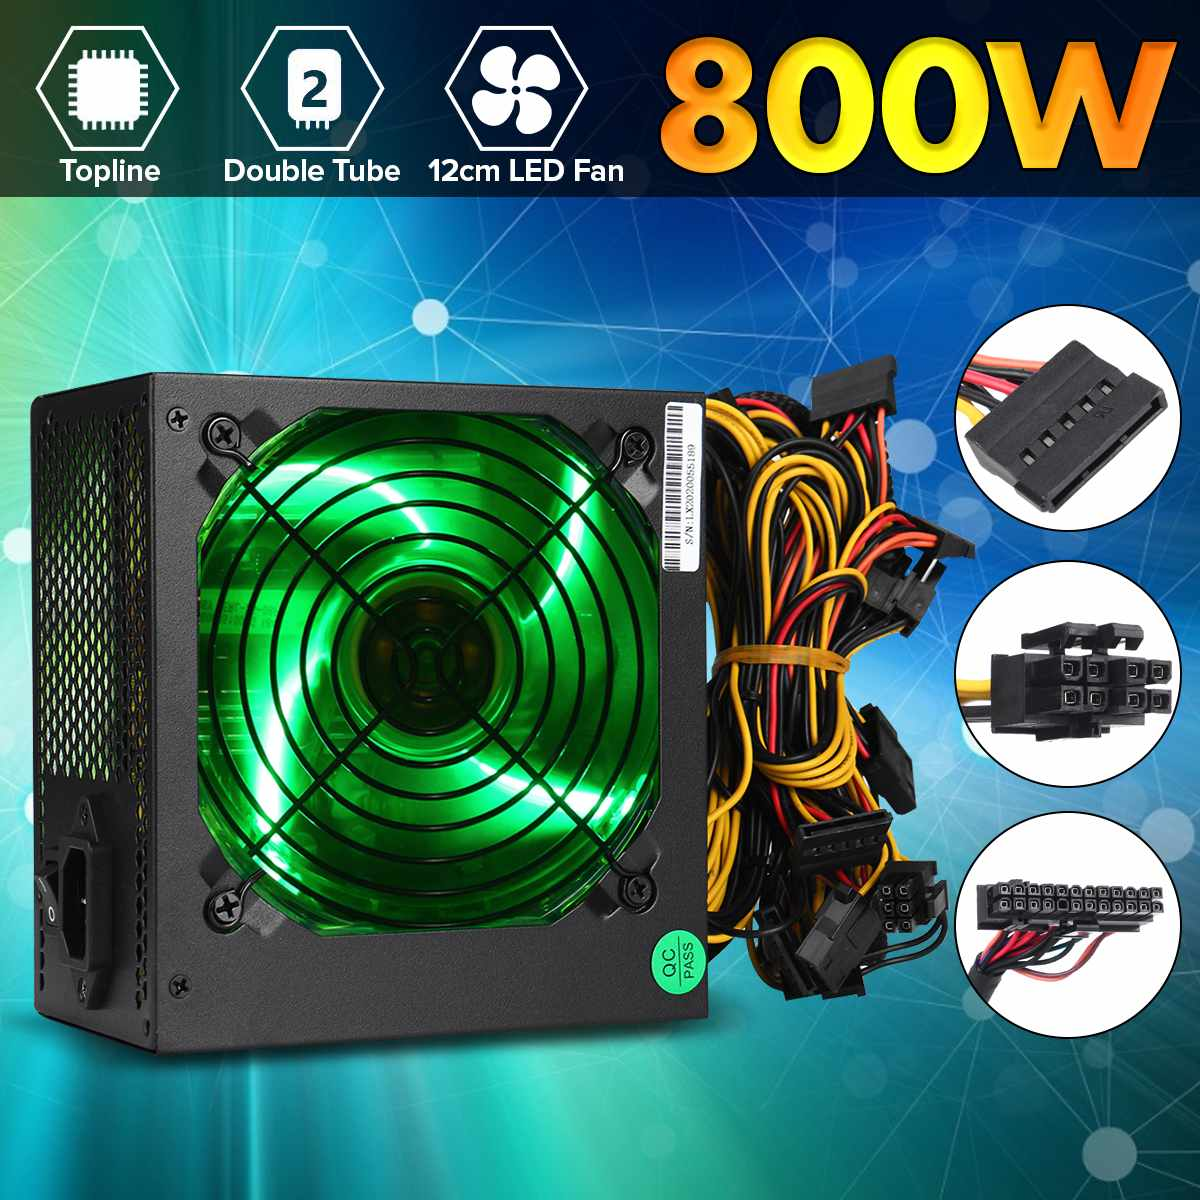 800w 220v Pc Power Supply 12cm Led Silent Fan With Intelligent Temperature Control Intel Amd Atx 12v For Desktop Computer Aliexpress